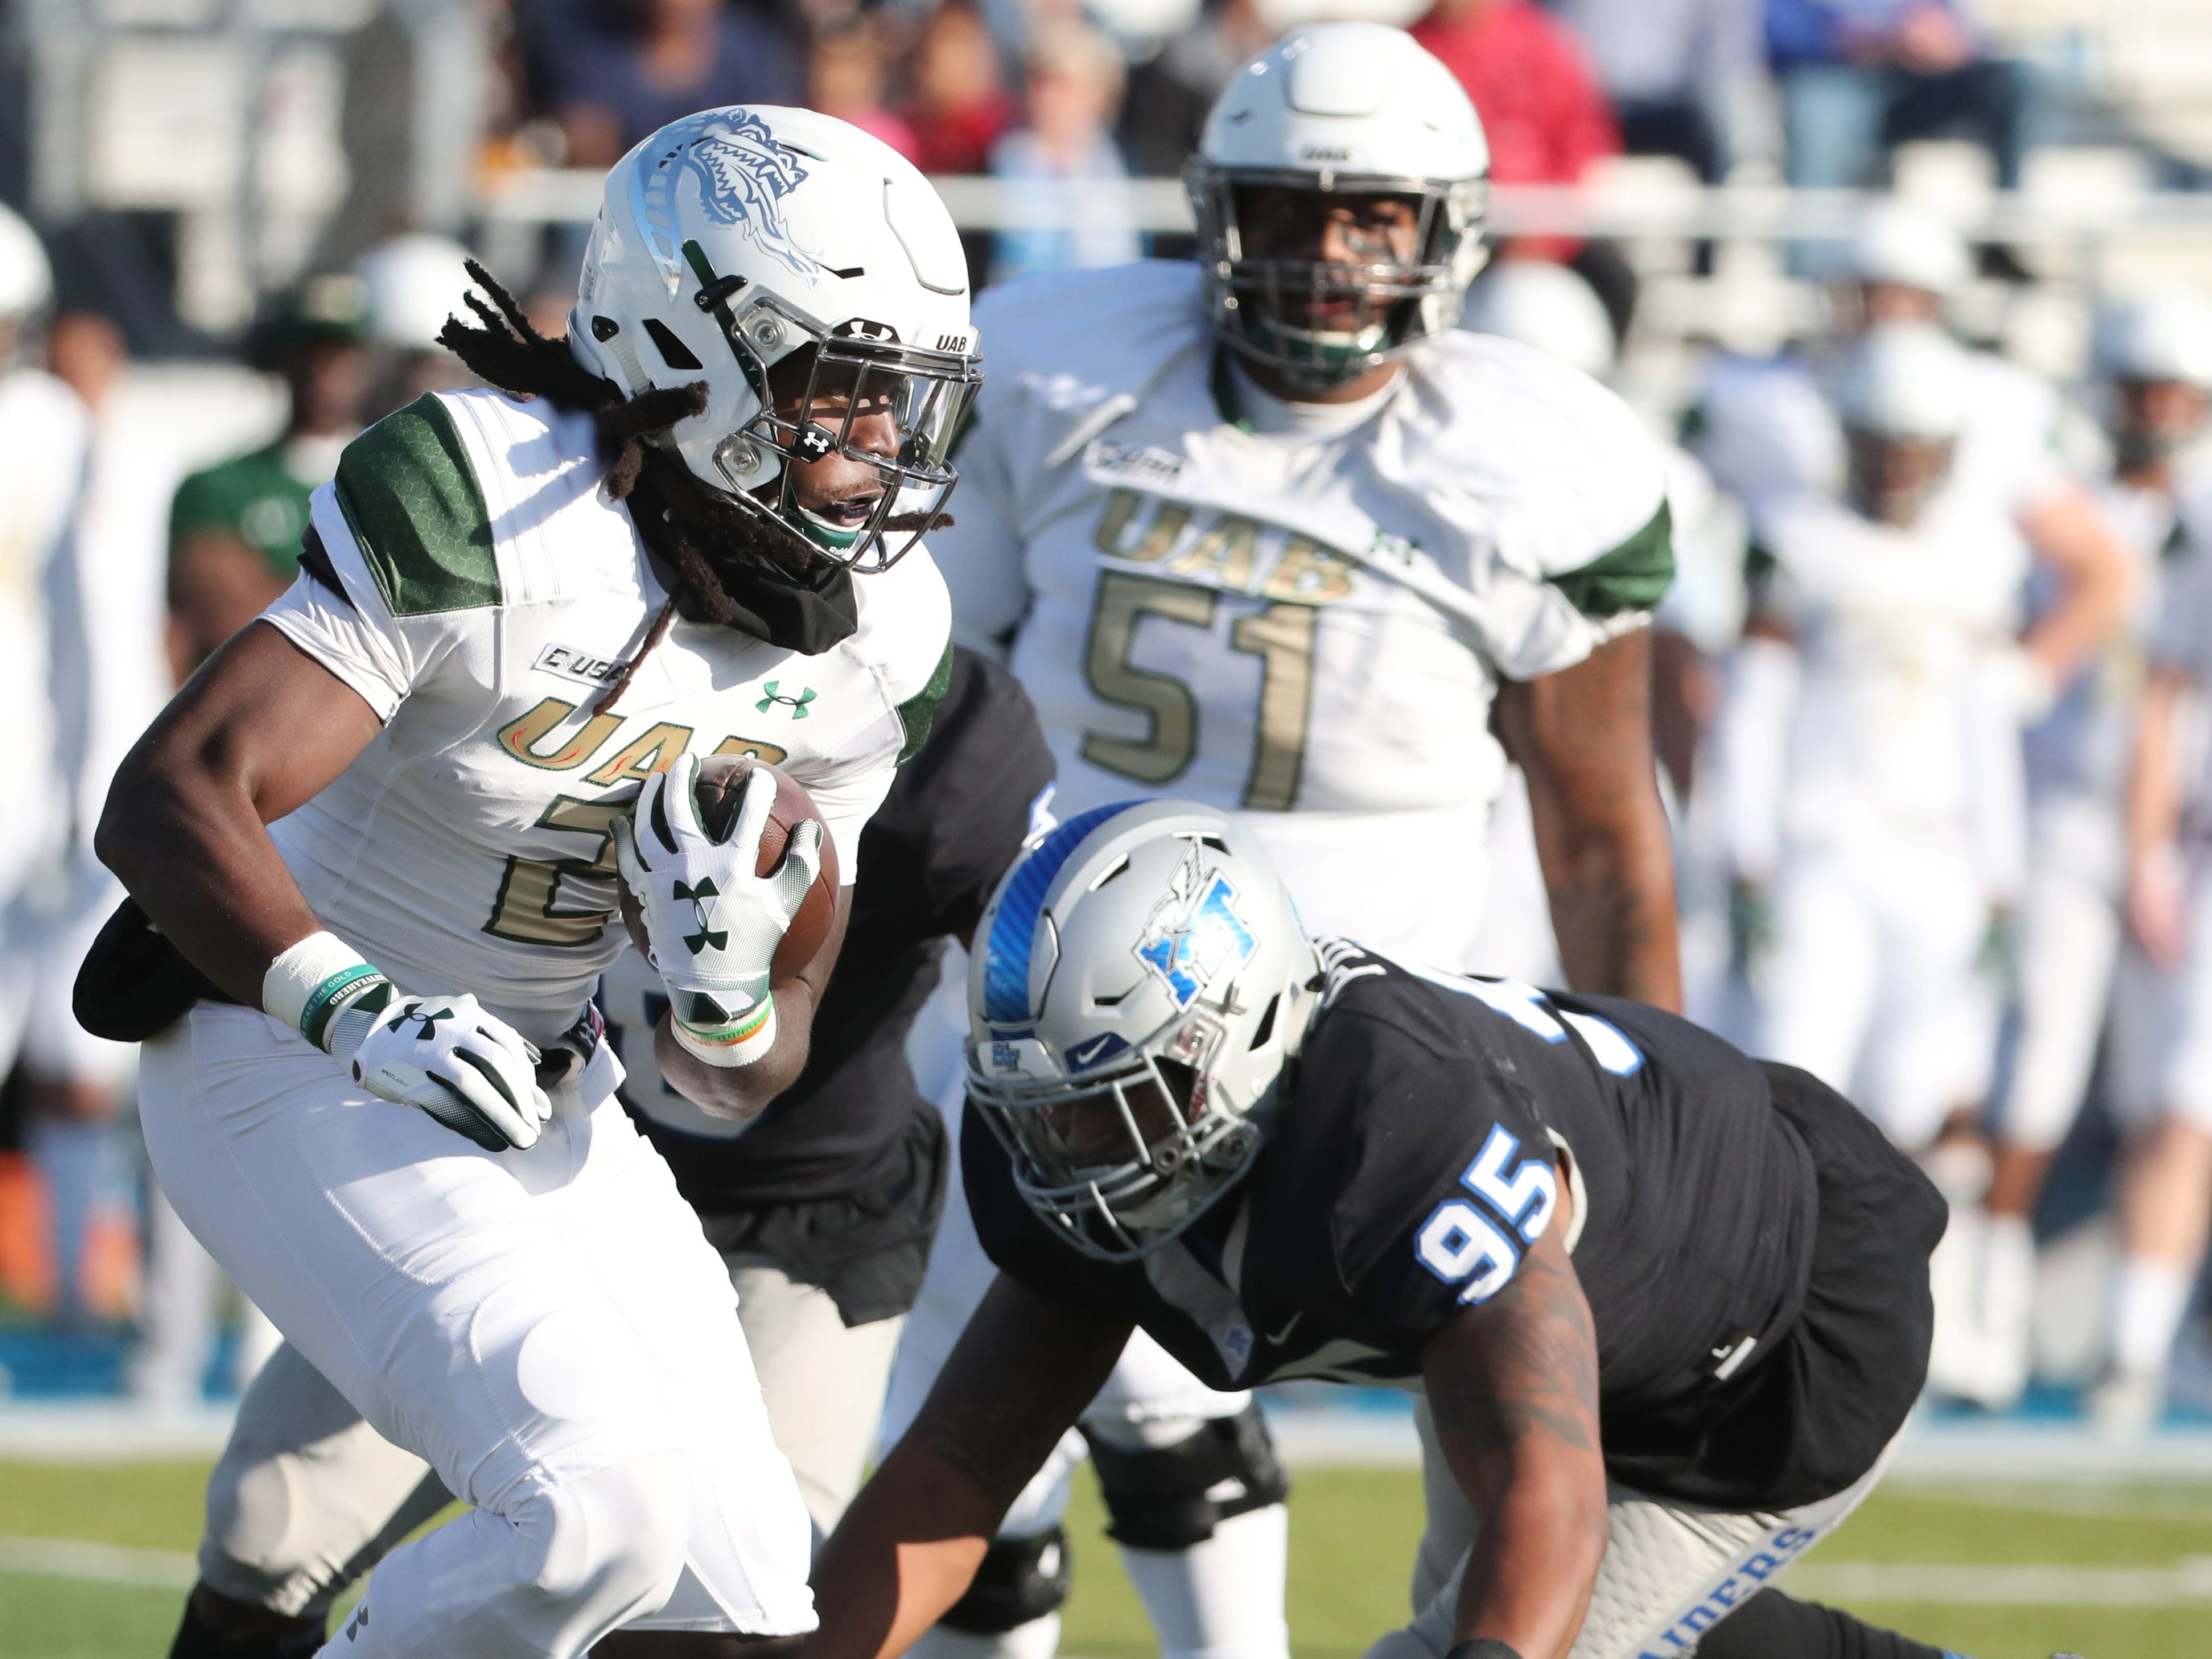 UAB's Lucios Stanley (2) runs the ball during the game against MTSU at MTSU on Saturday, Nov. 24, 2018.